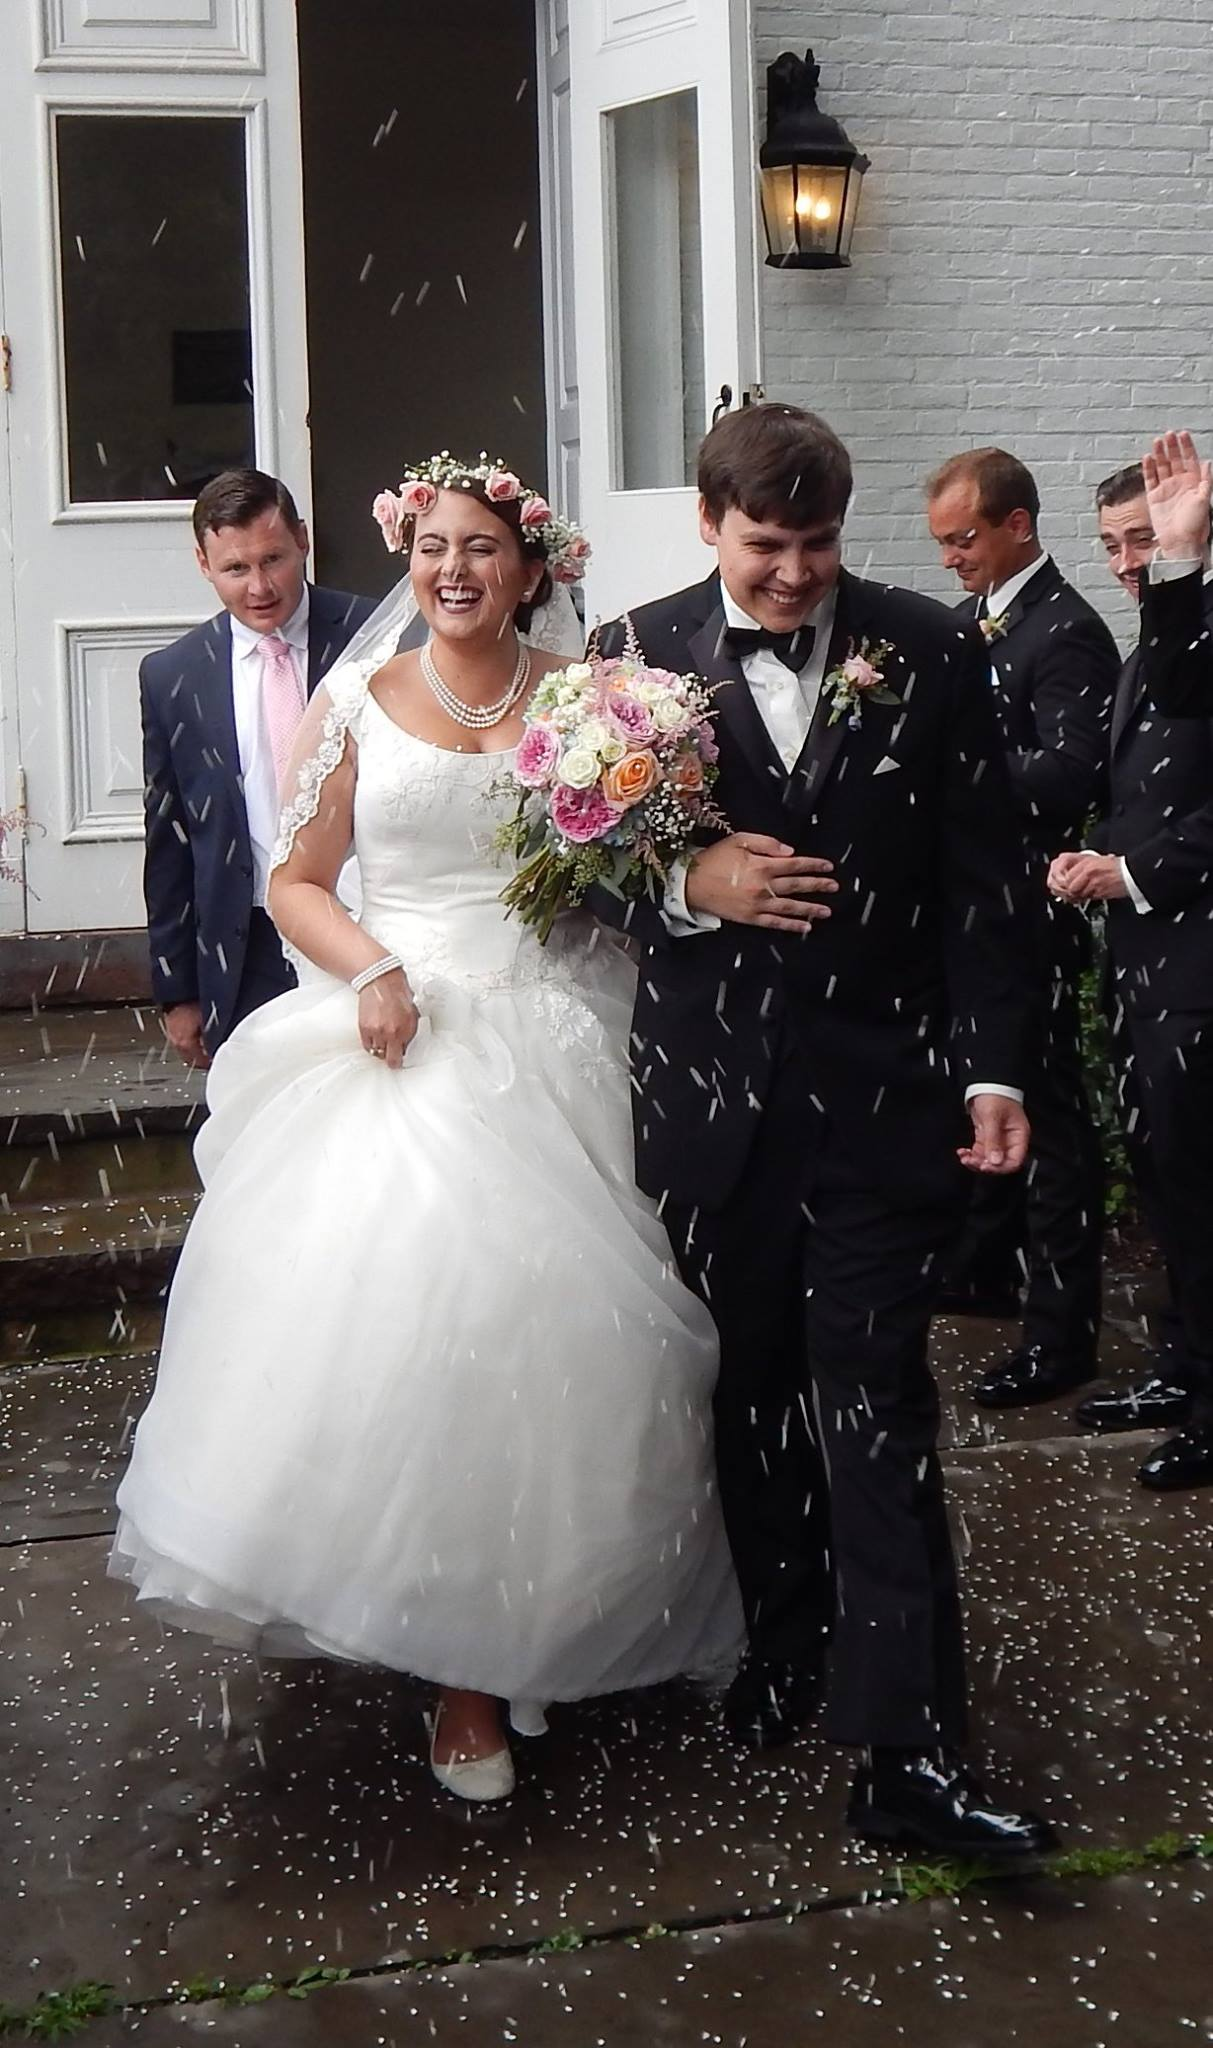 Us leaving the church on our wedding day!